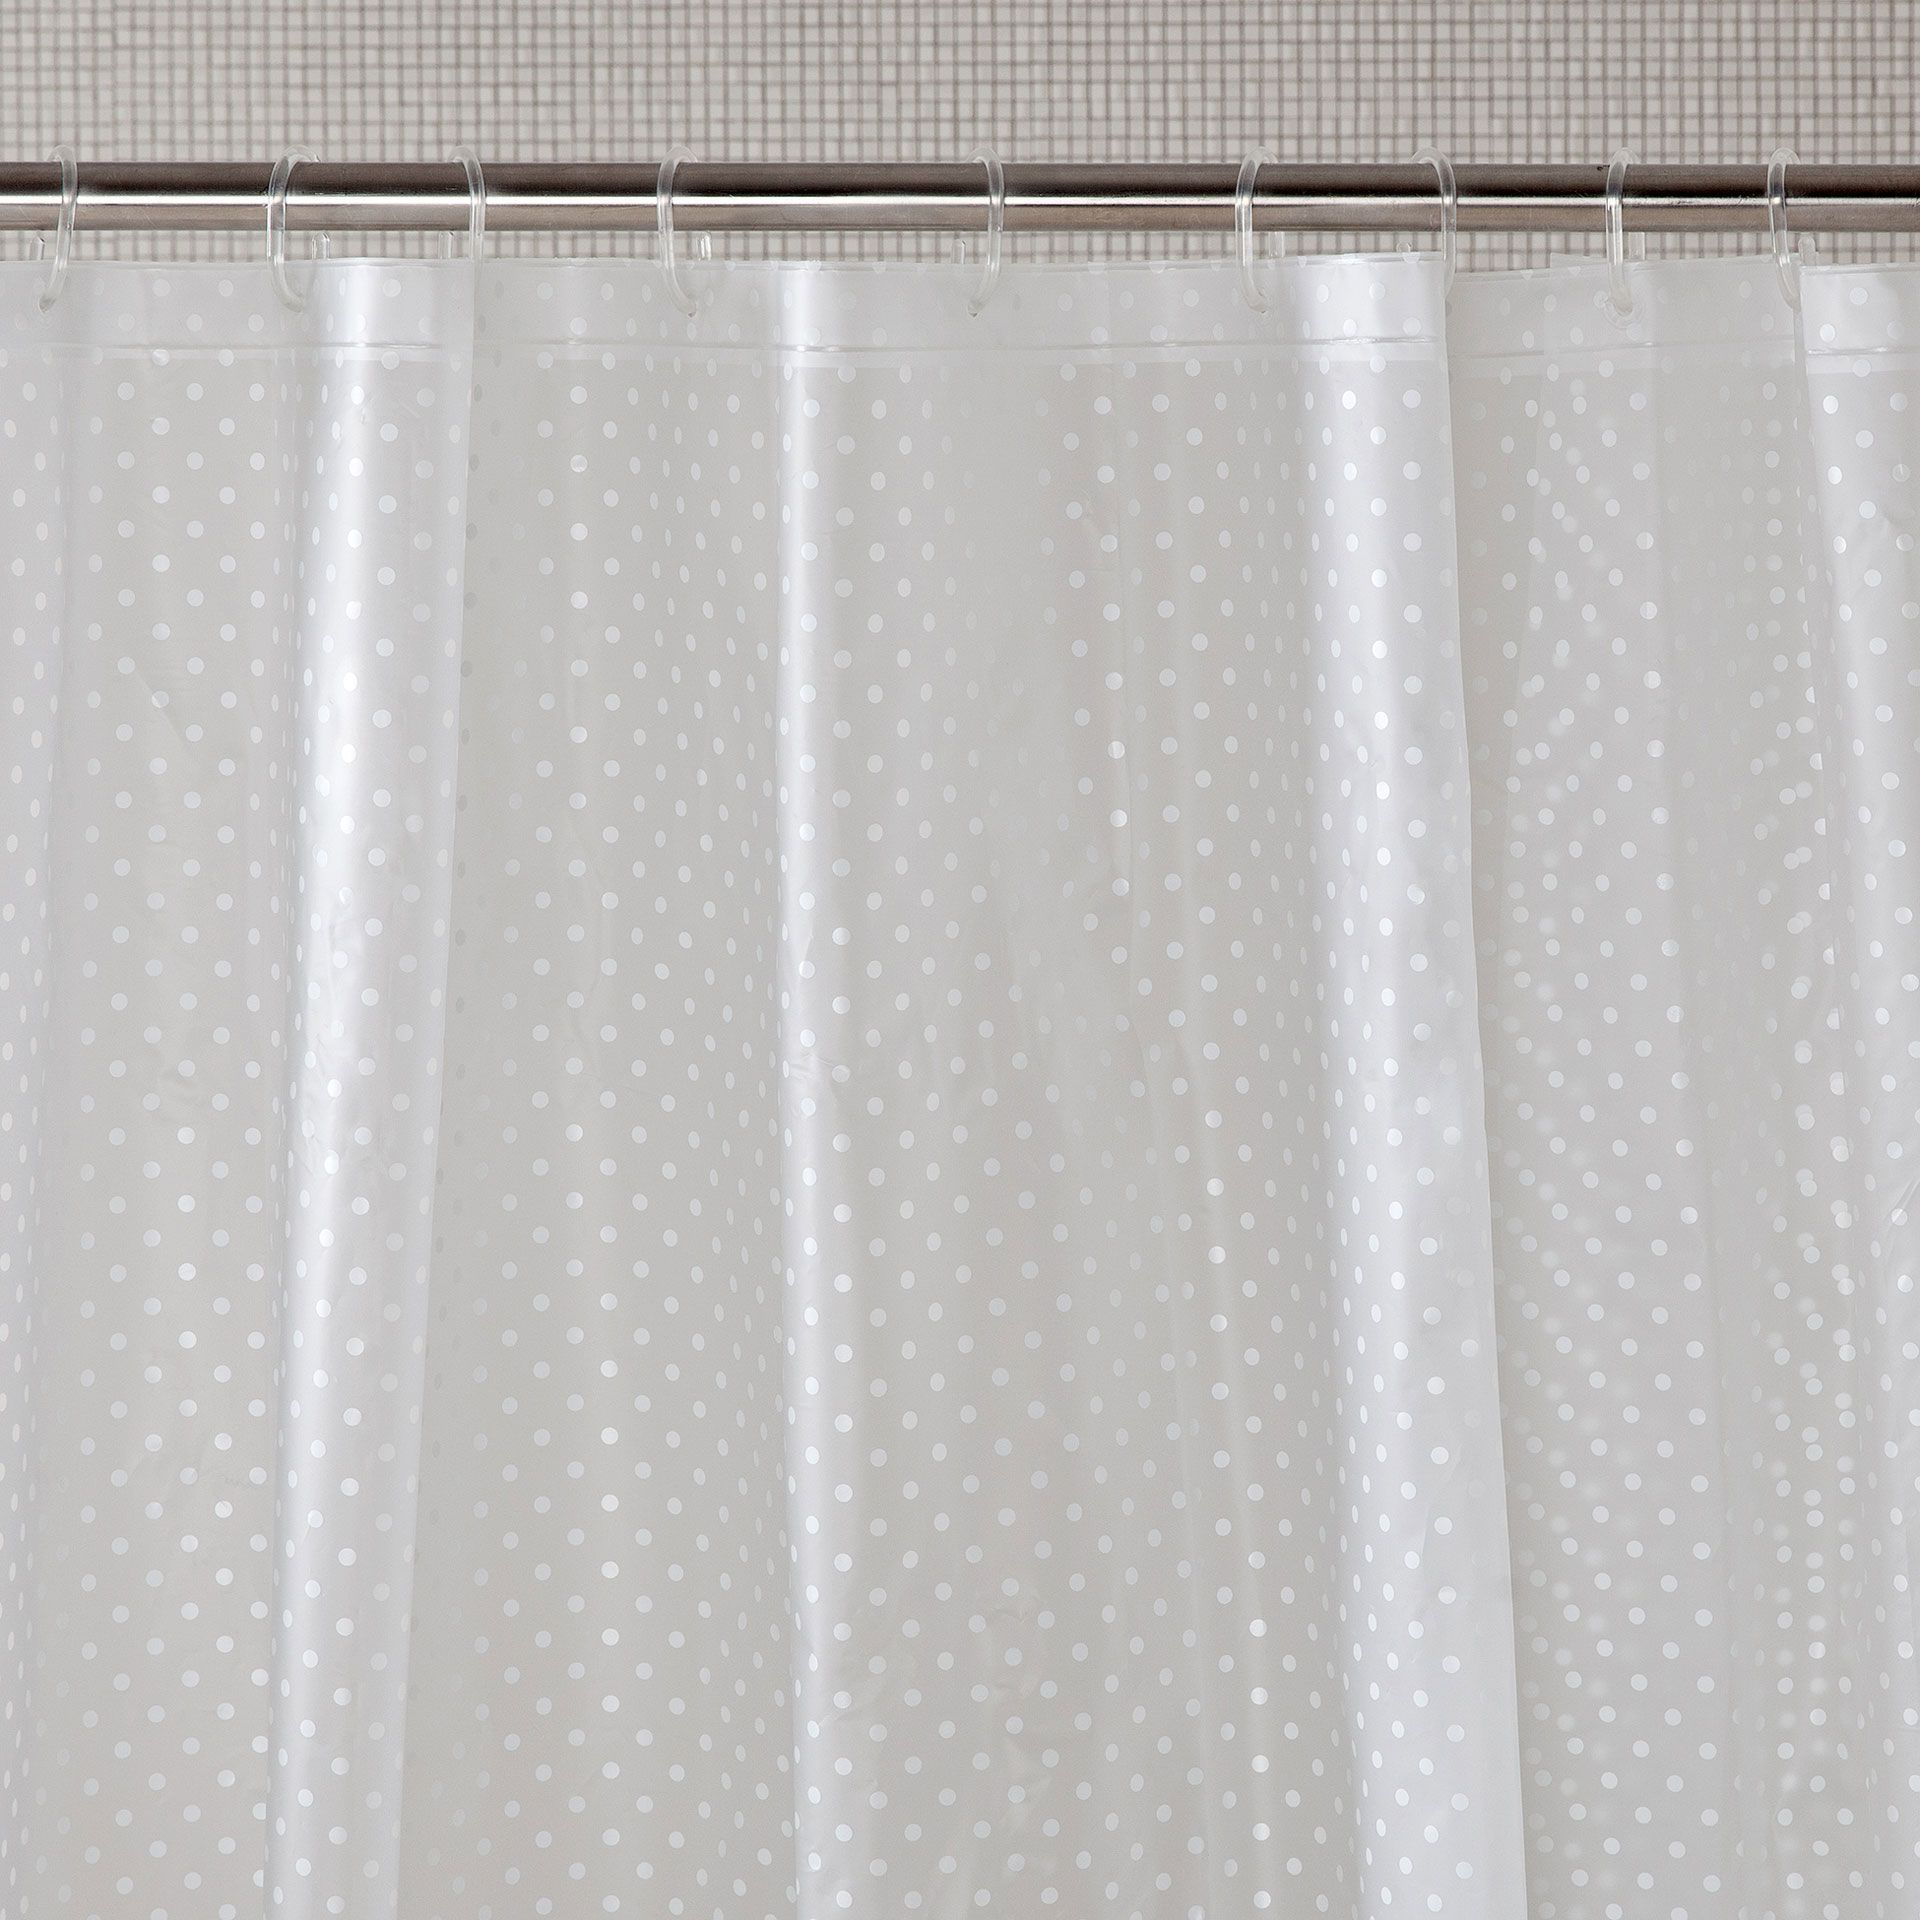 Polka Dot Shower Curtain Curtains ZaraBathroom